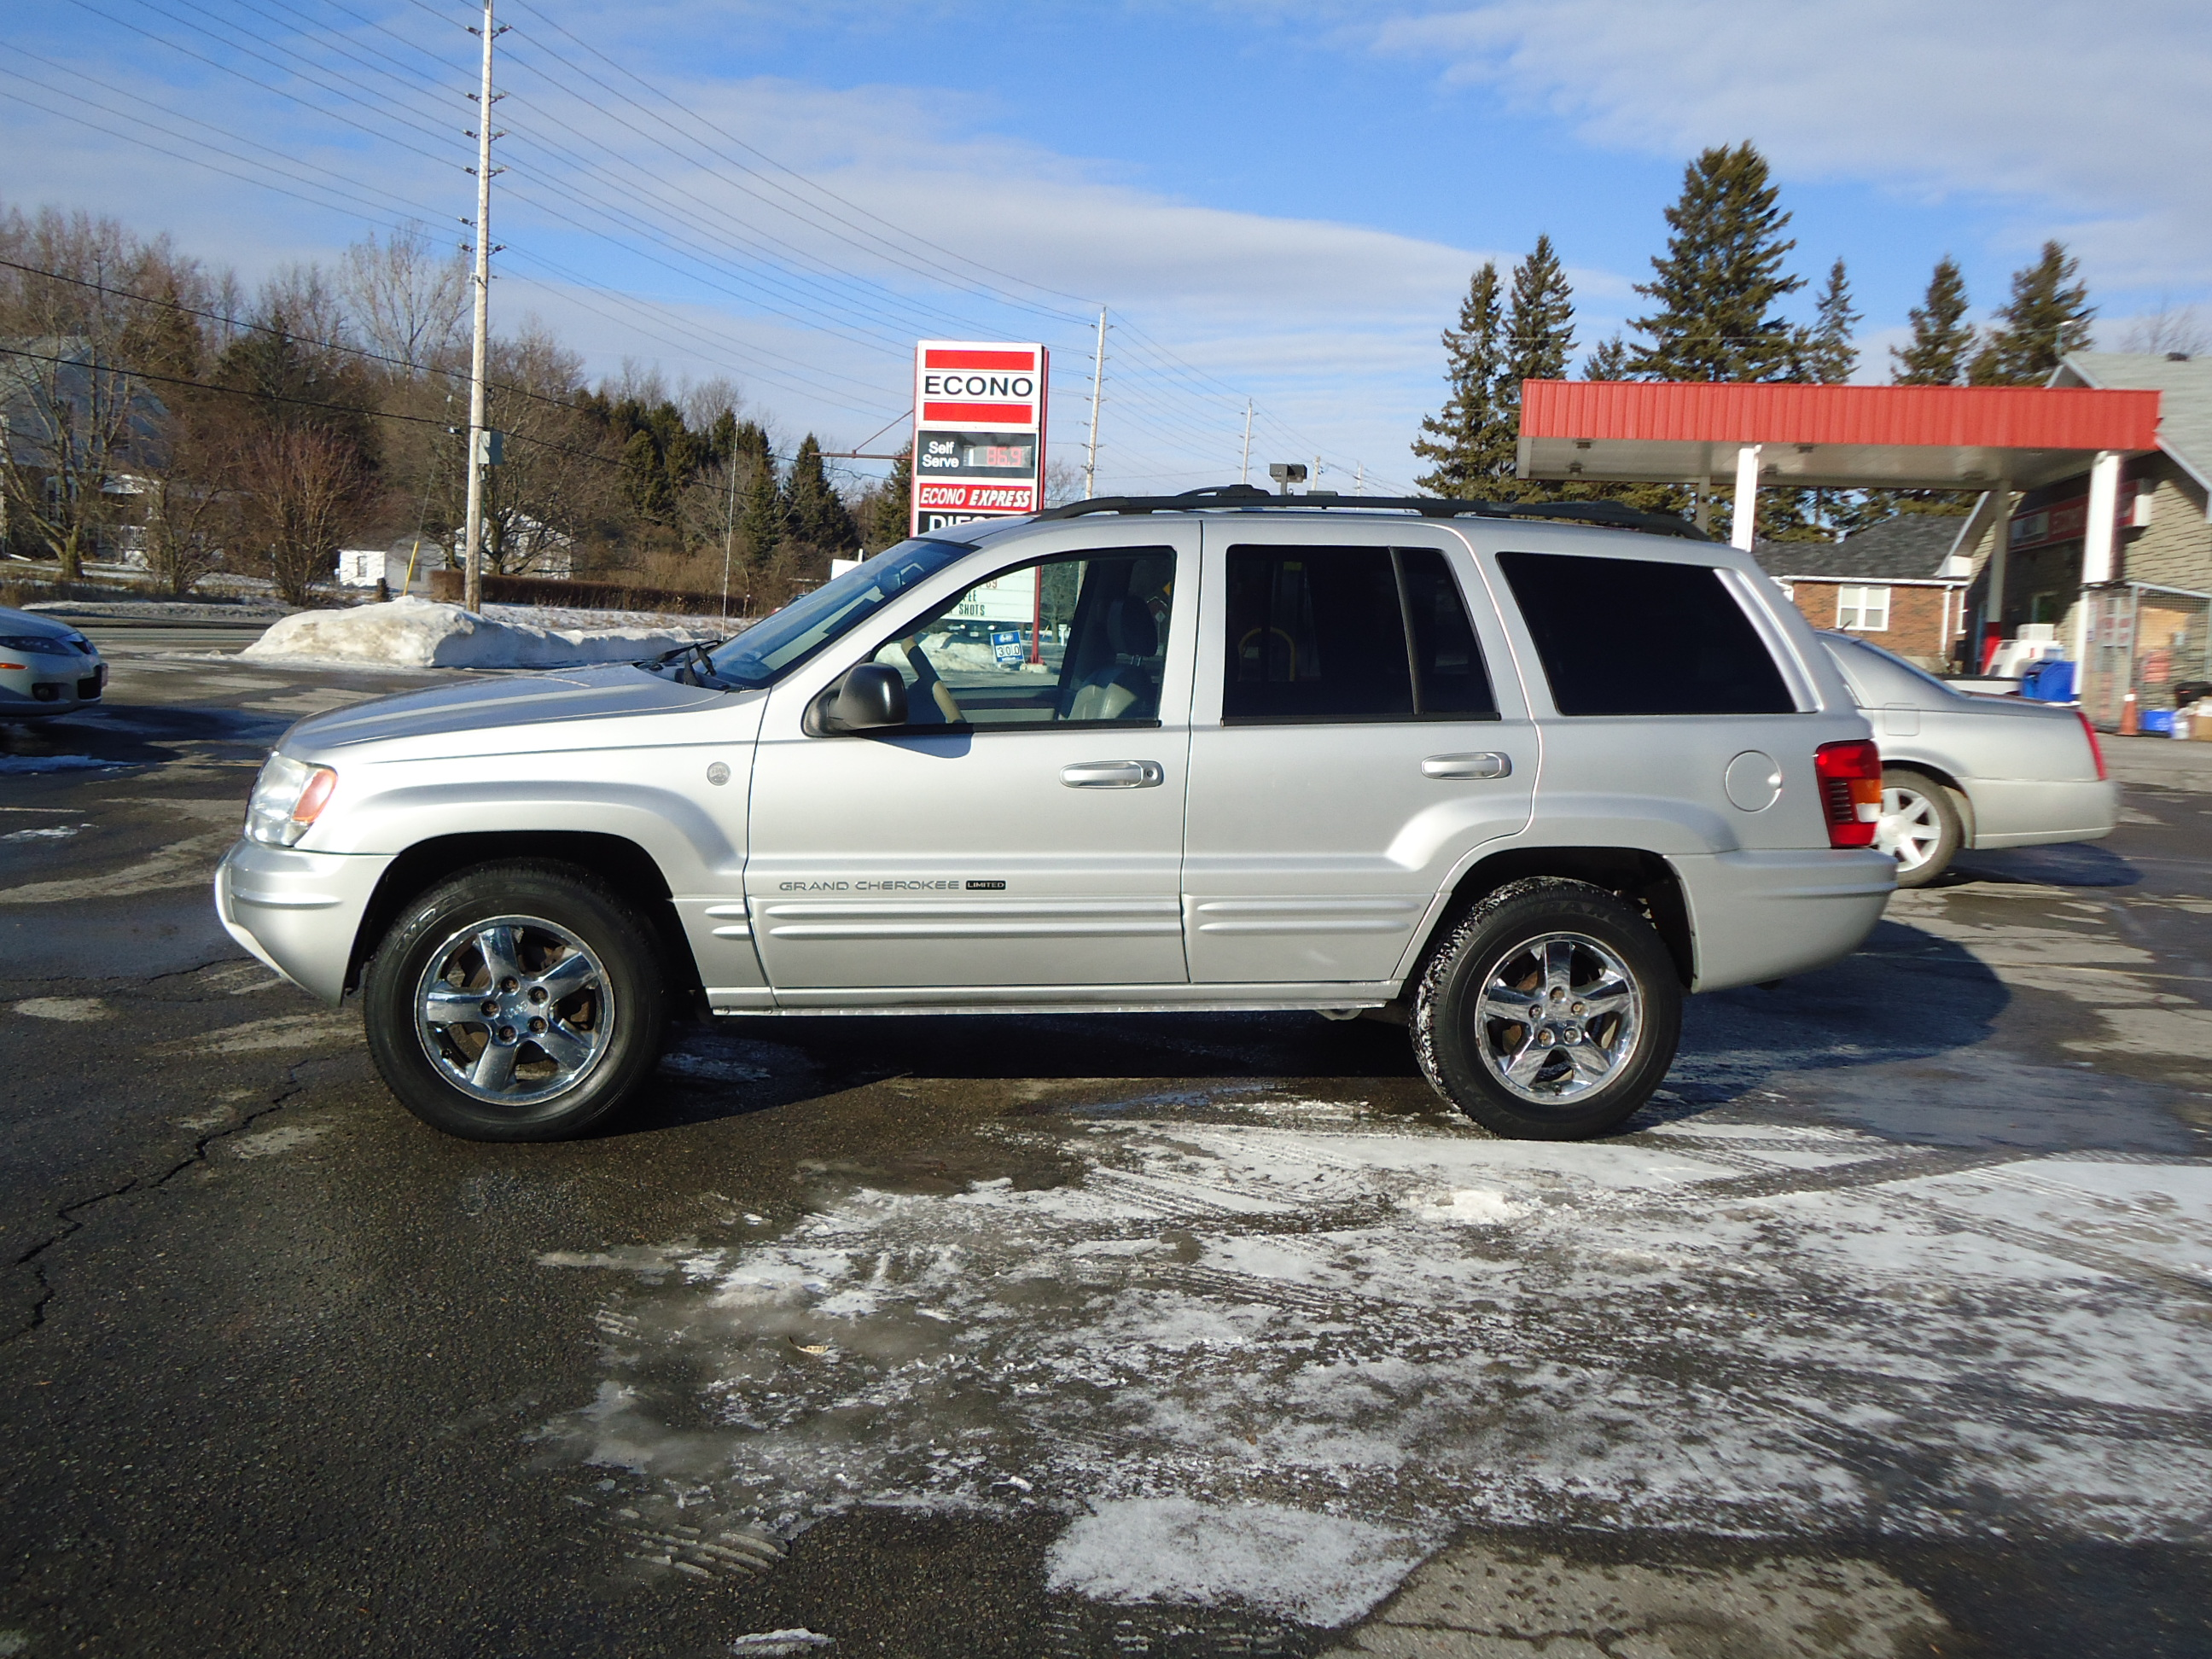 2004 JEEP GR CHEROKEE LIMITED 4X4 (9) | Bob Currie Auto Sales